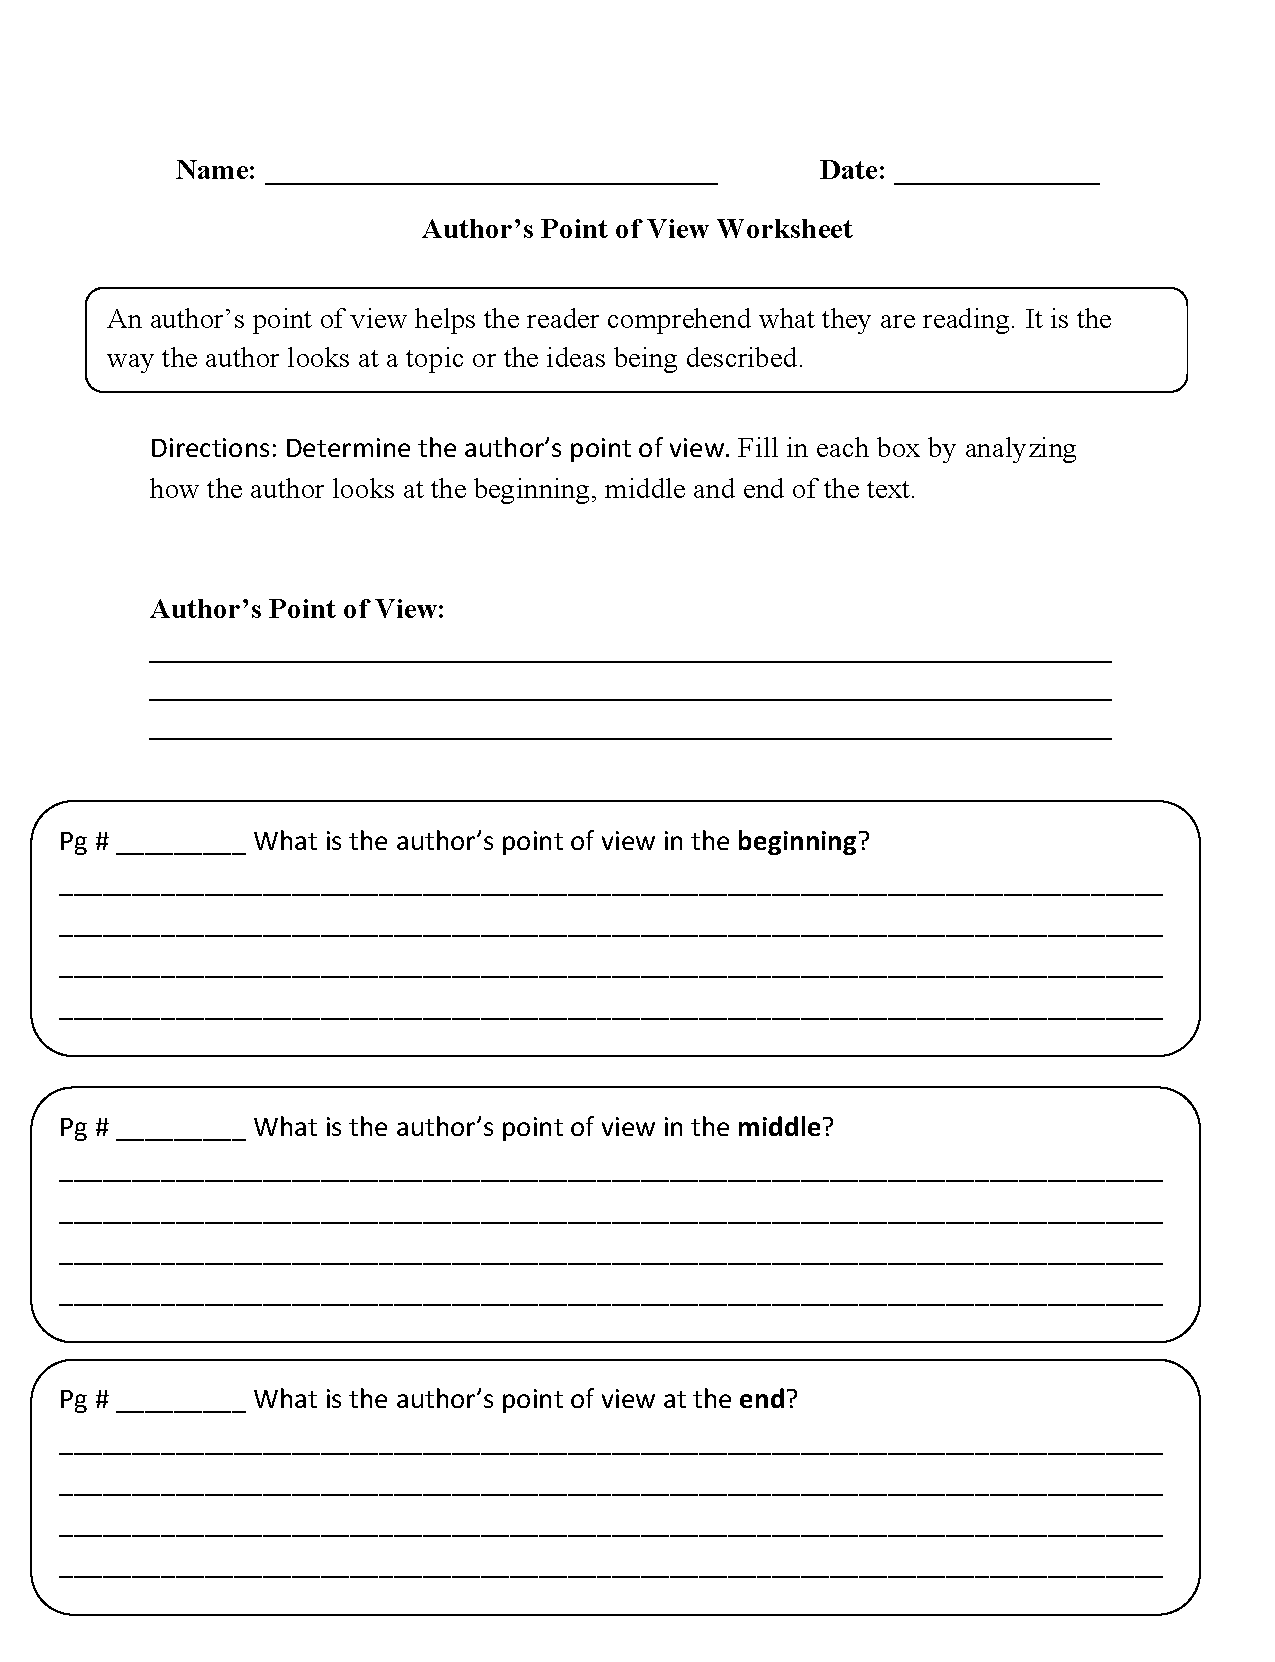 Proatmealus  Personable Englishlinxcom  Point Of View Worksheets With Fair Point Of View Worksheets With Lovely Noun Verb Adjective Worksheets Also Silent E Worksheets For Second Grade In Addition  Worksheet And Weather Map Worksheets Printable As Well As Five Kingdoms Of Living Things Worksheets Additionally Third Grade Reading Comprehension Worksheets Free Printable From Englishlinxcom With Proatmealus  Fair Englishlinxcom  Point Of View Worksheets With Lovely Point Of View Worksheets And Personable Noun Verb Adjective Worksheets Also Silent E Worksheets For Second Grade In Addition  Worksheet From Englishlinxcom